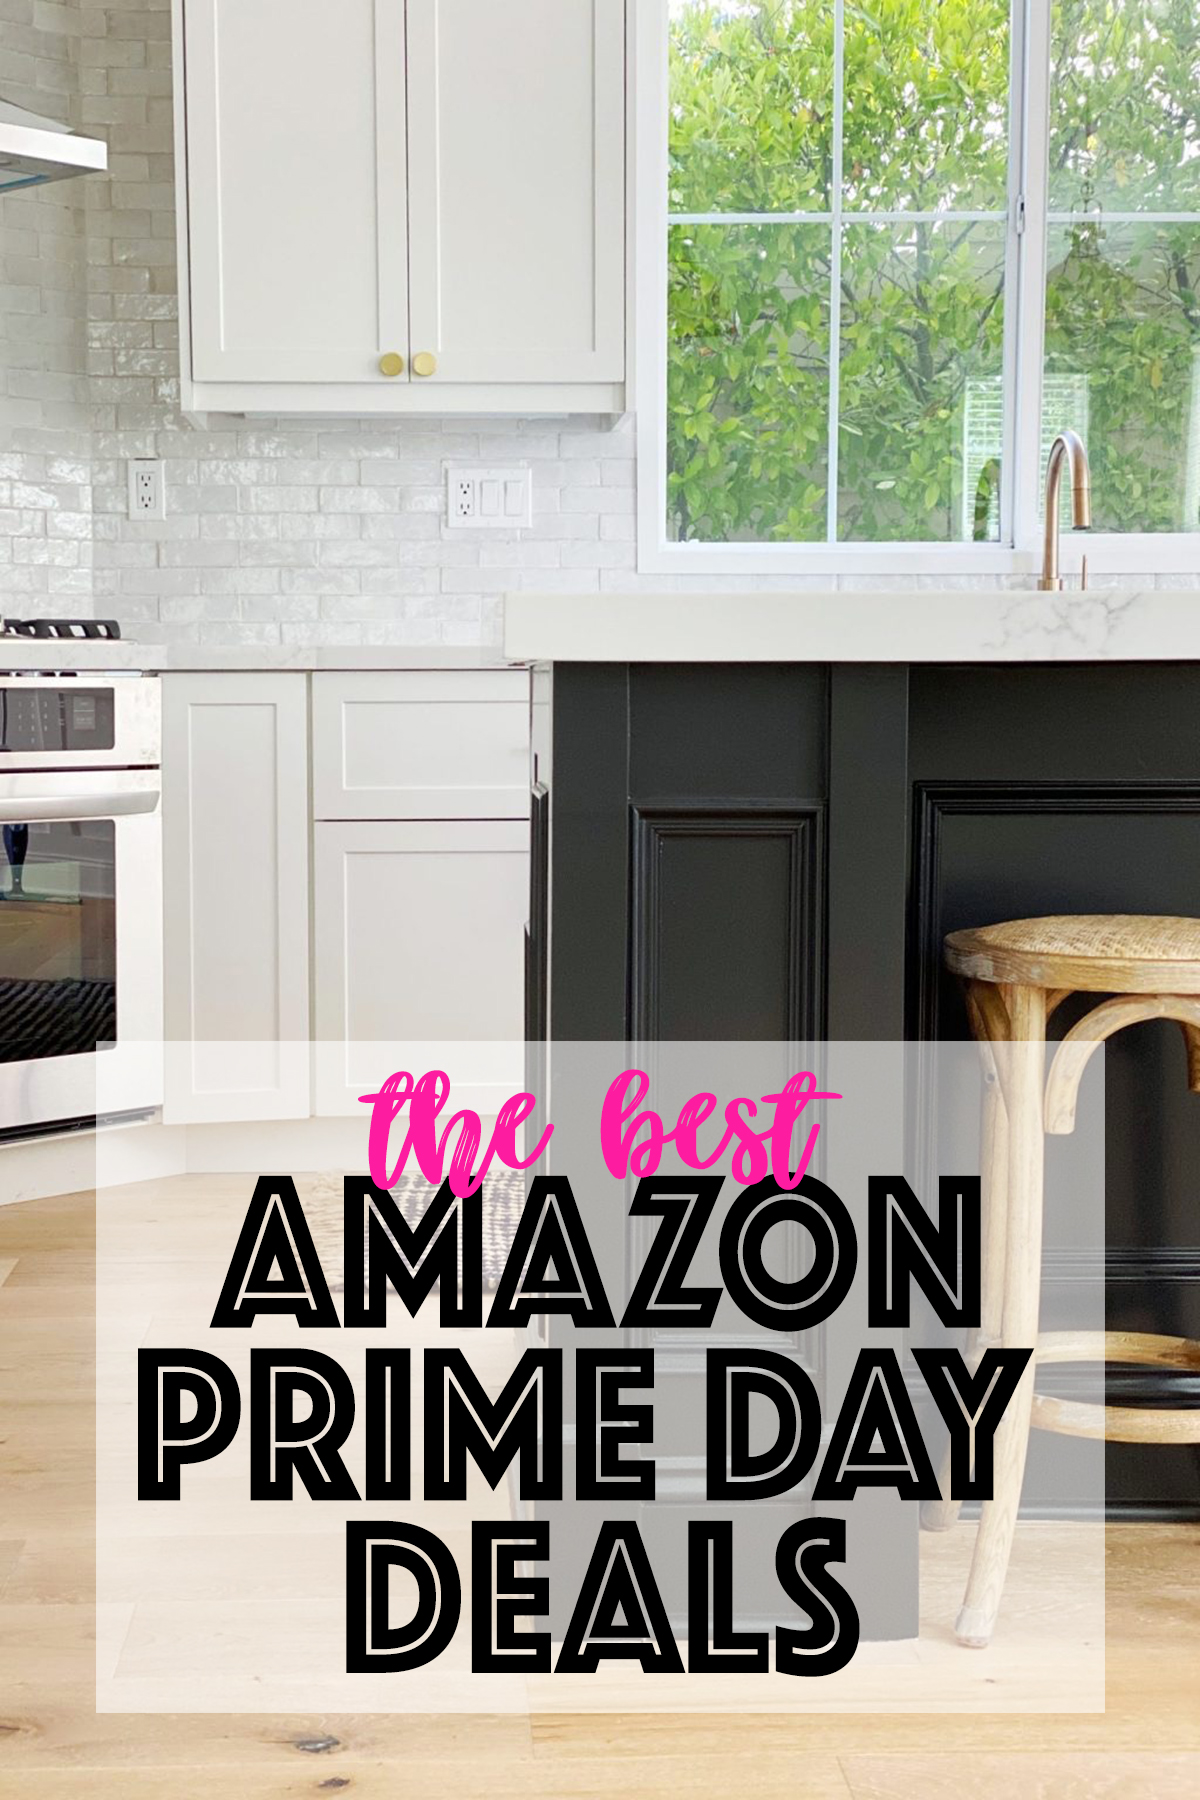 The BEST Amazon Prime Day Deals for Home!